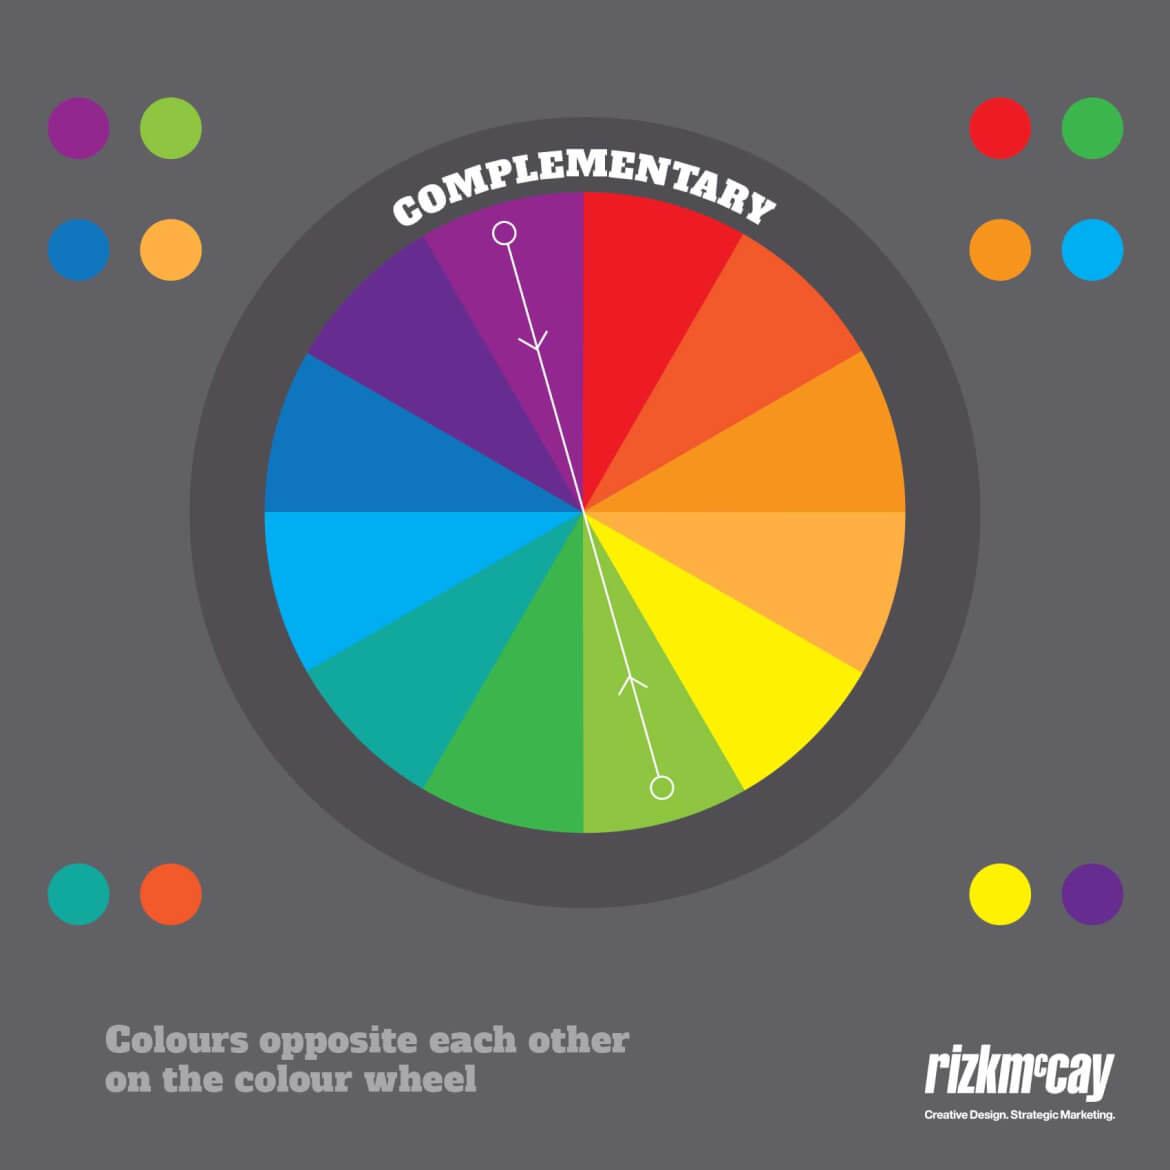 Complementary colour wheel - colours that are opposite in the colour wheel